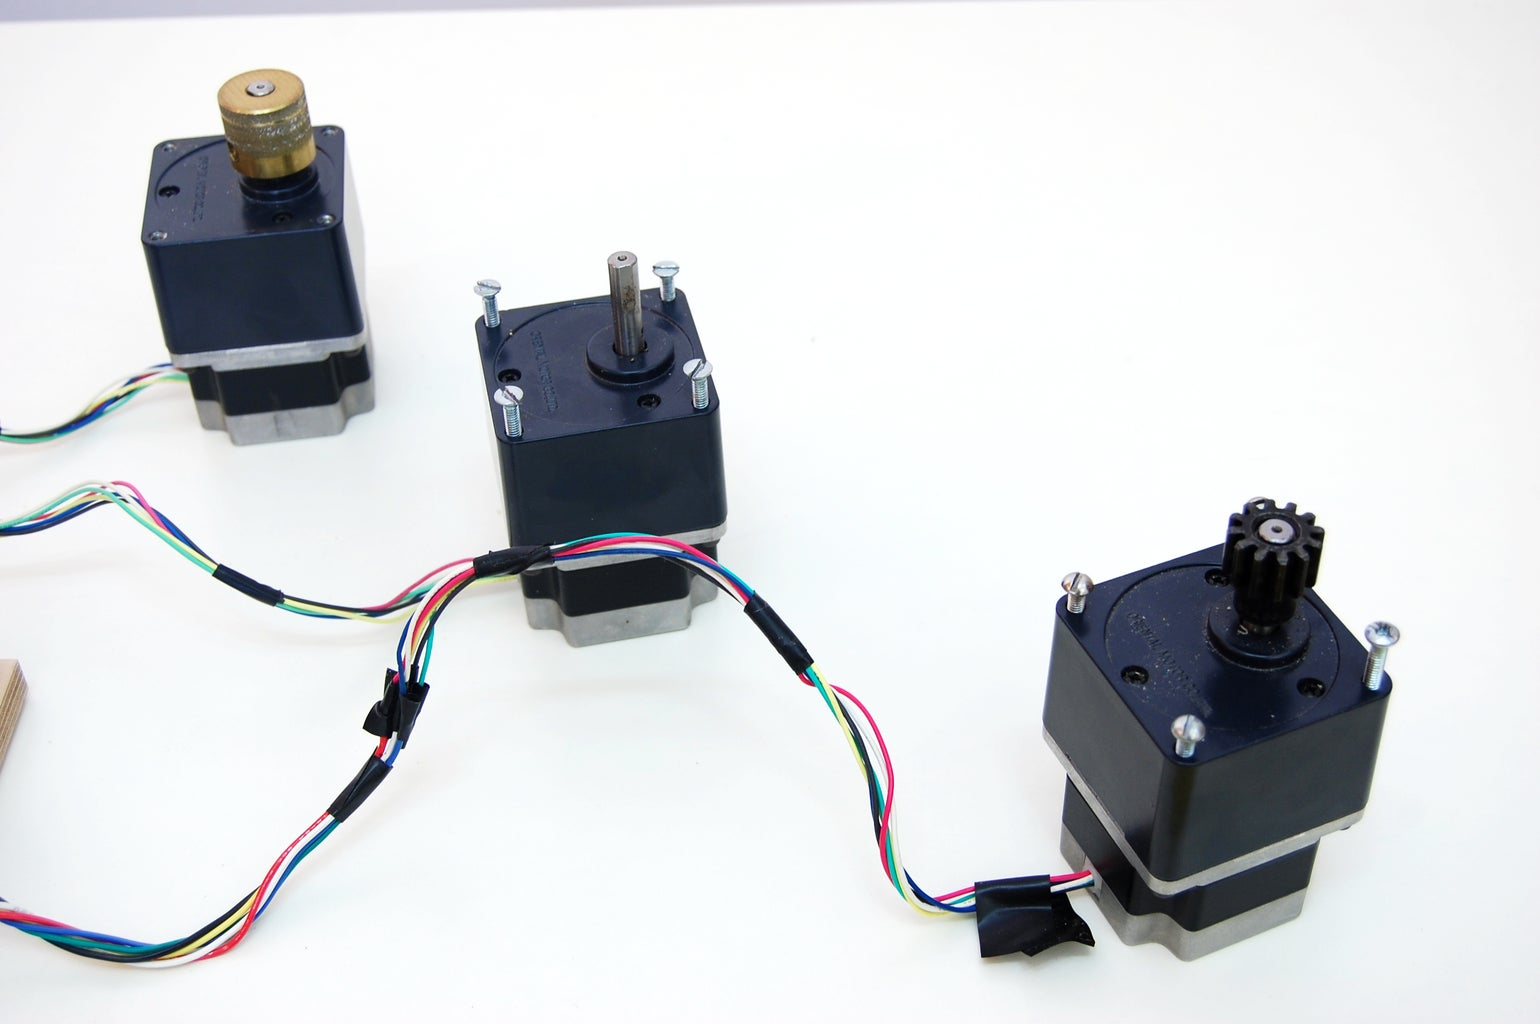 Wiring and Motors